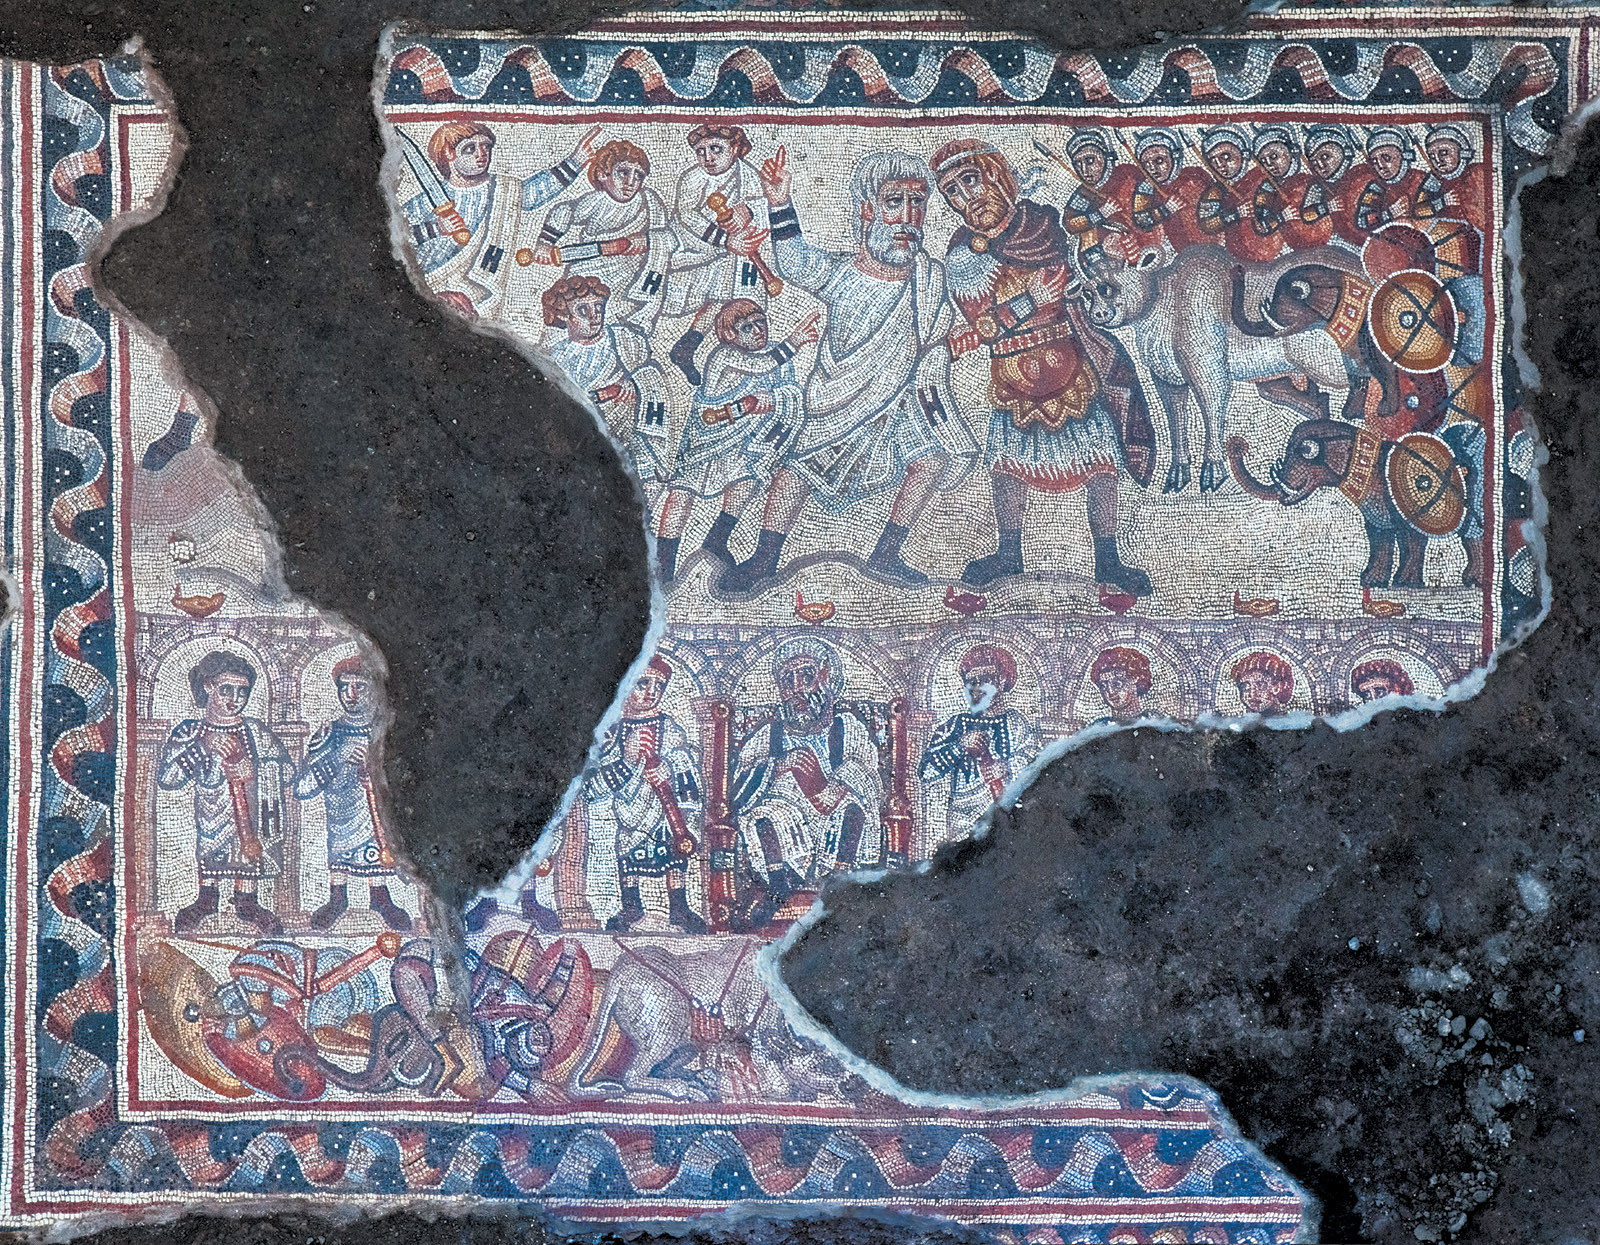 A portion of a mosaic excavated between 2013 and 2015 from the Huqoq synagogue, likely depicting the resistance of the Maccabees to the Seleucid king Antiochus IV in the mid-second century BCE, Lower Galilee, Israel; photograph by Jim Haberman